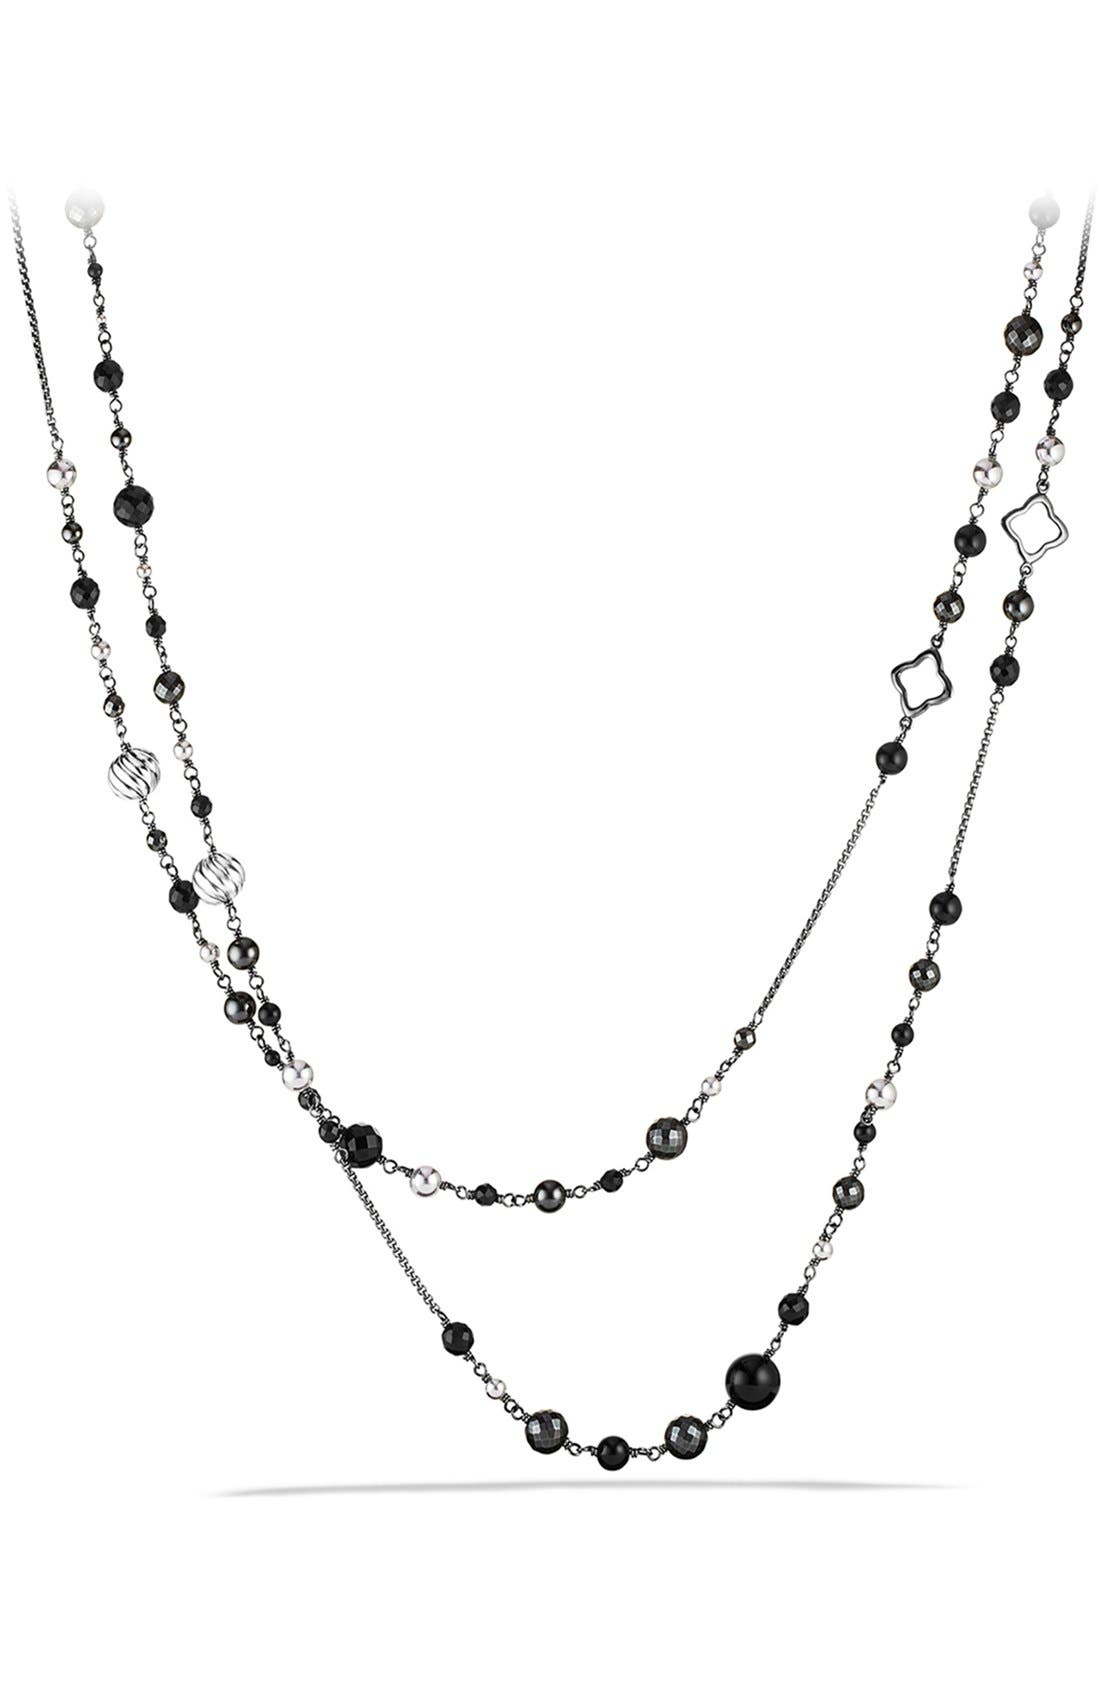 Main Image - David Yurman 'DY Elements' Chain Necklace with Black Onyx and Hematine